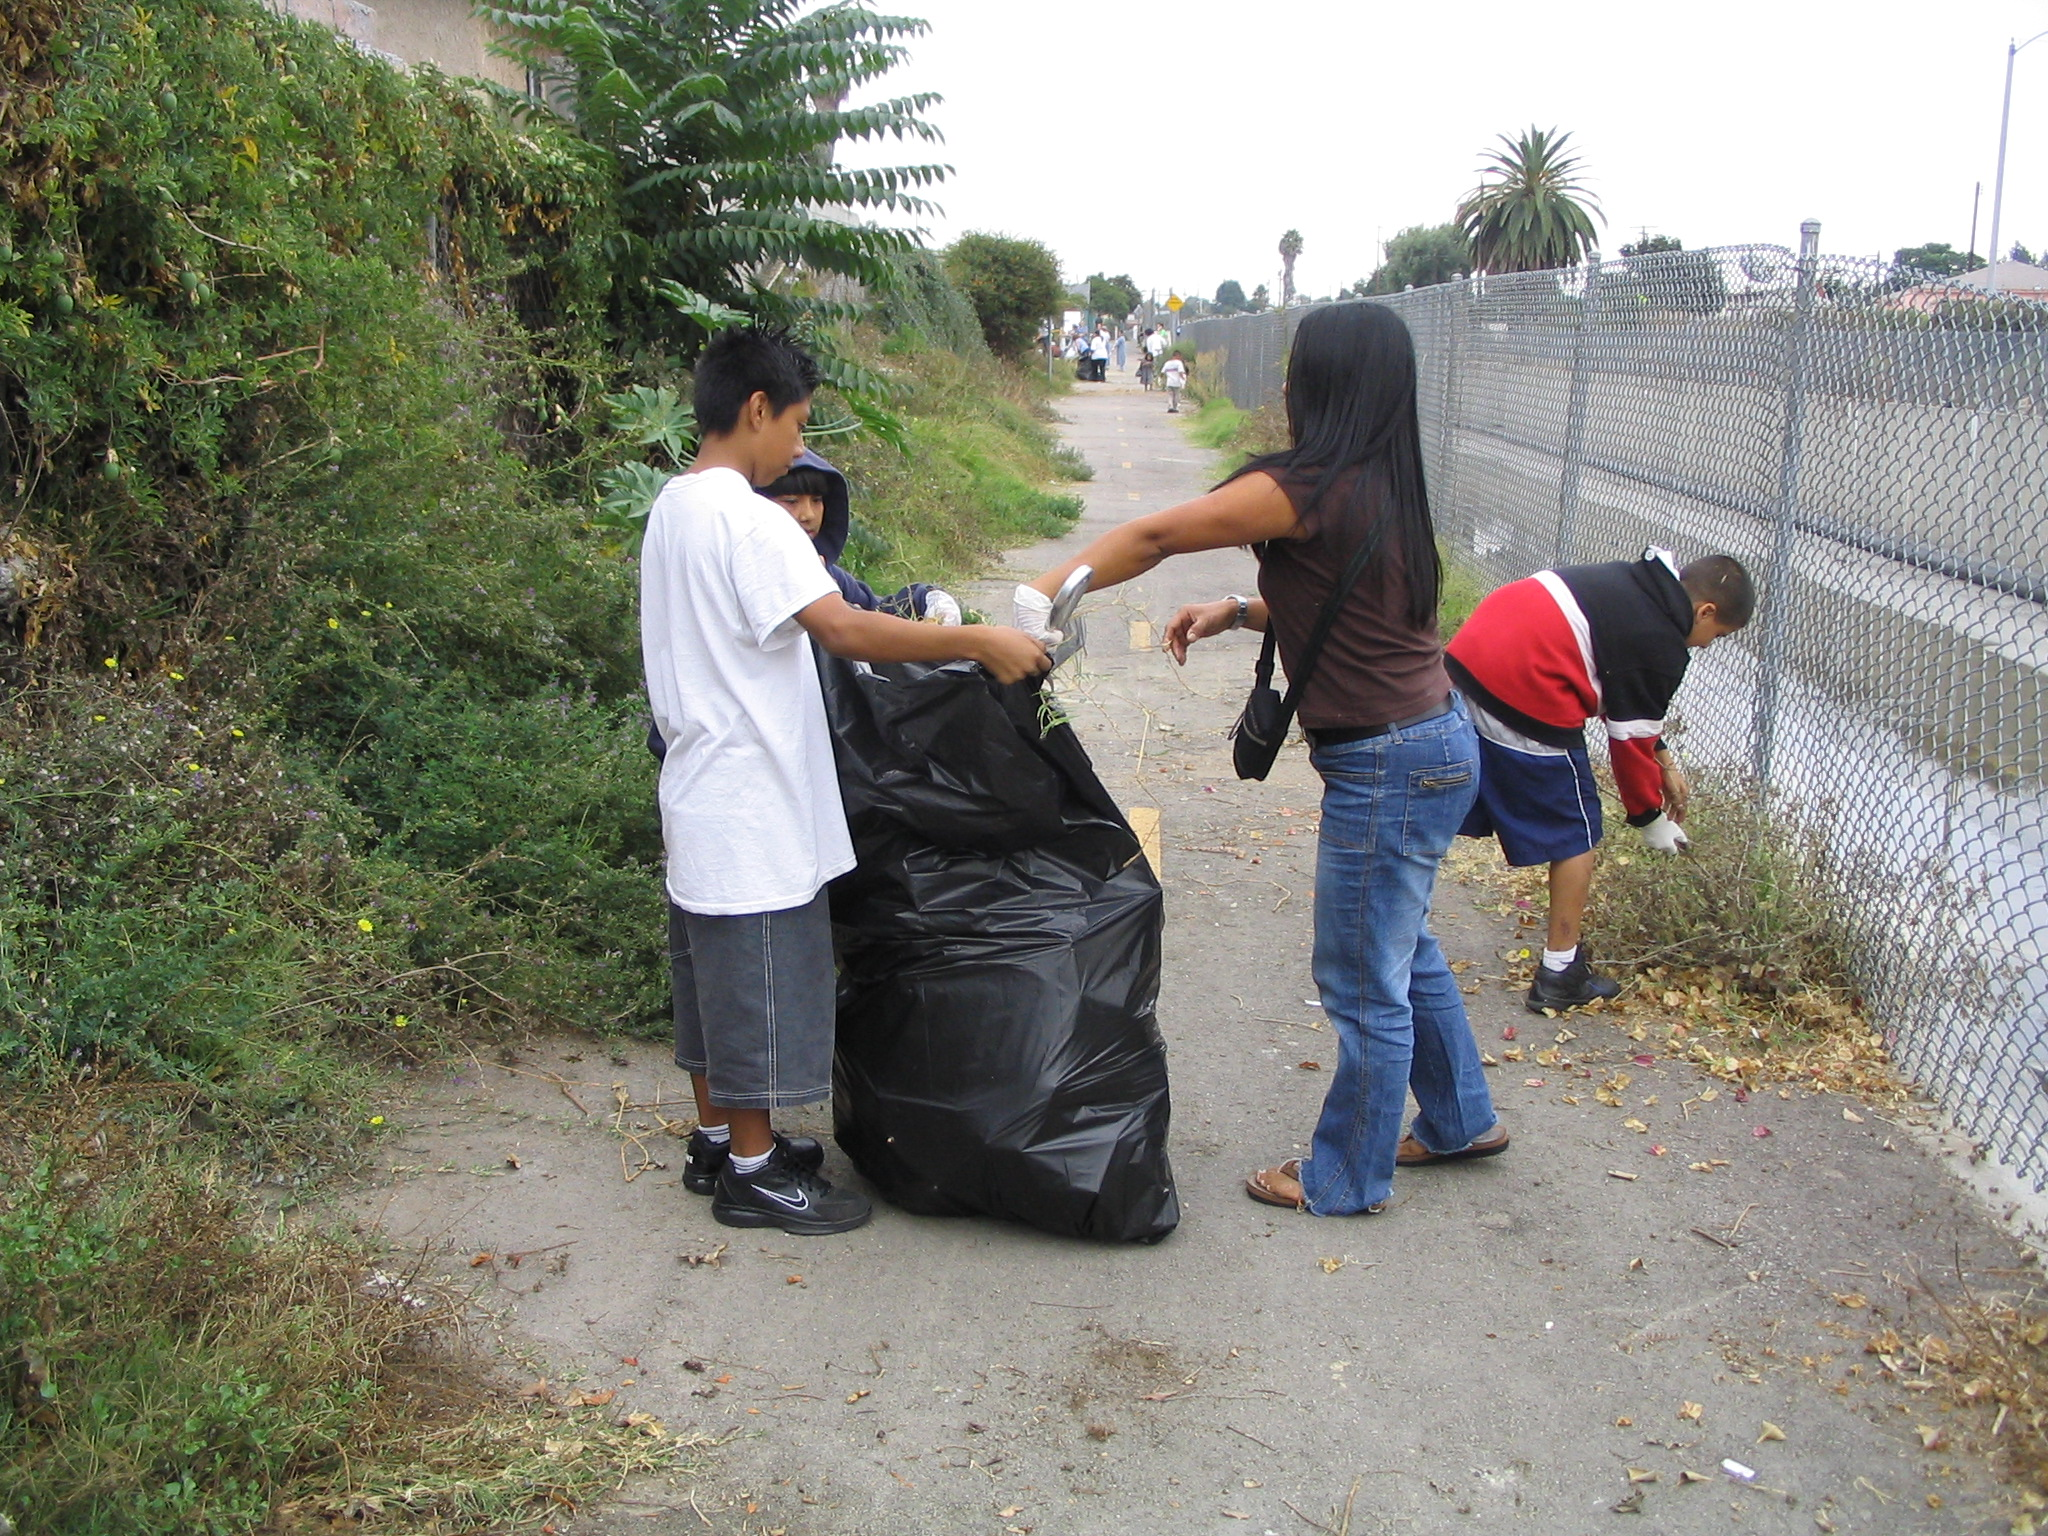 Cleaning up the bike path along Compton Creek.